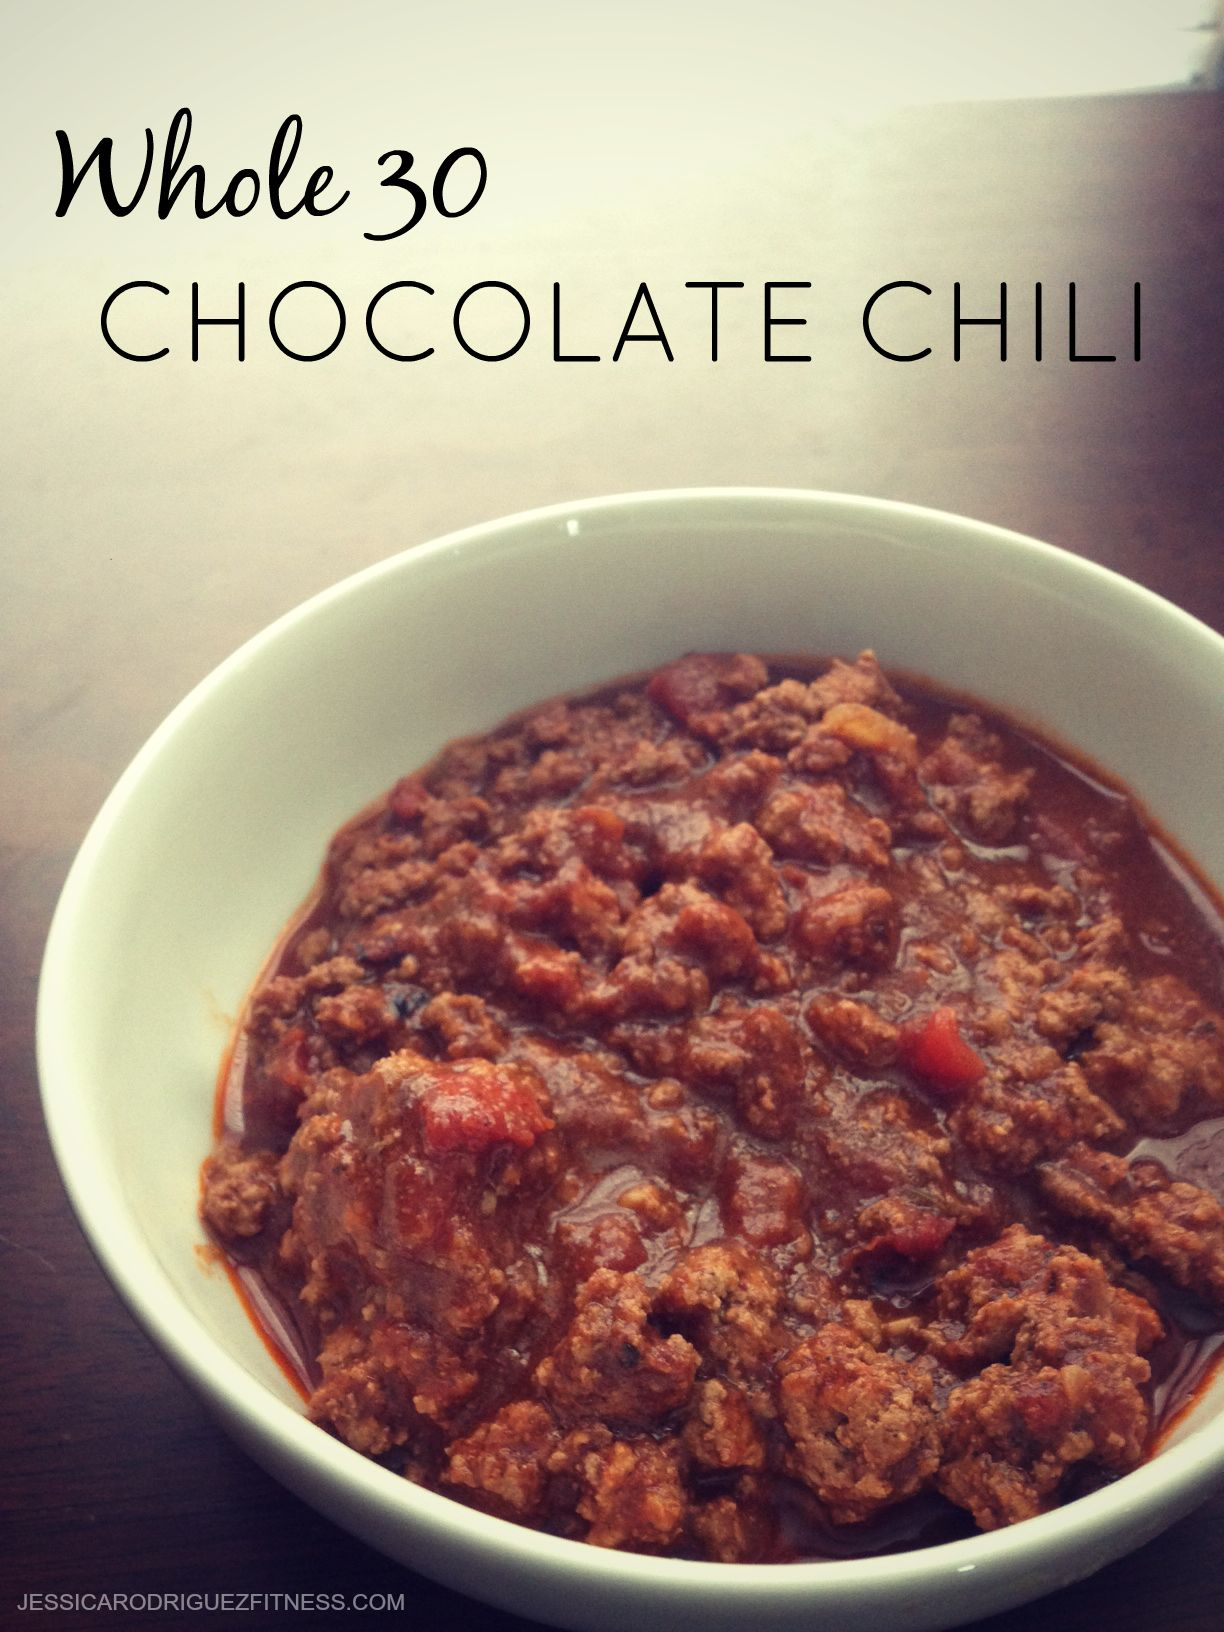 Chocolate Chili (Whole 30 Approved!) | Whole 30, Chili and The o'jays